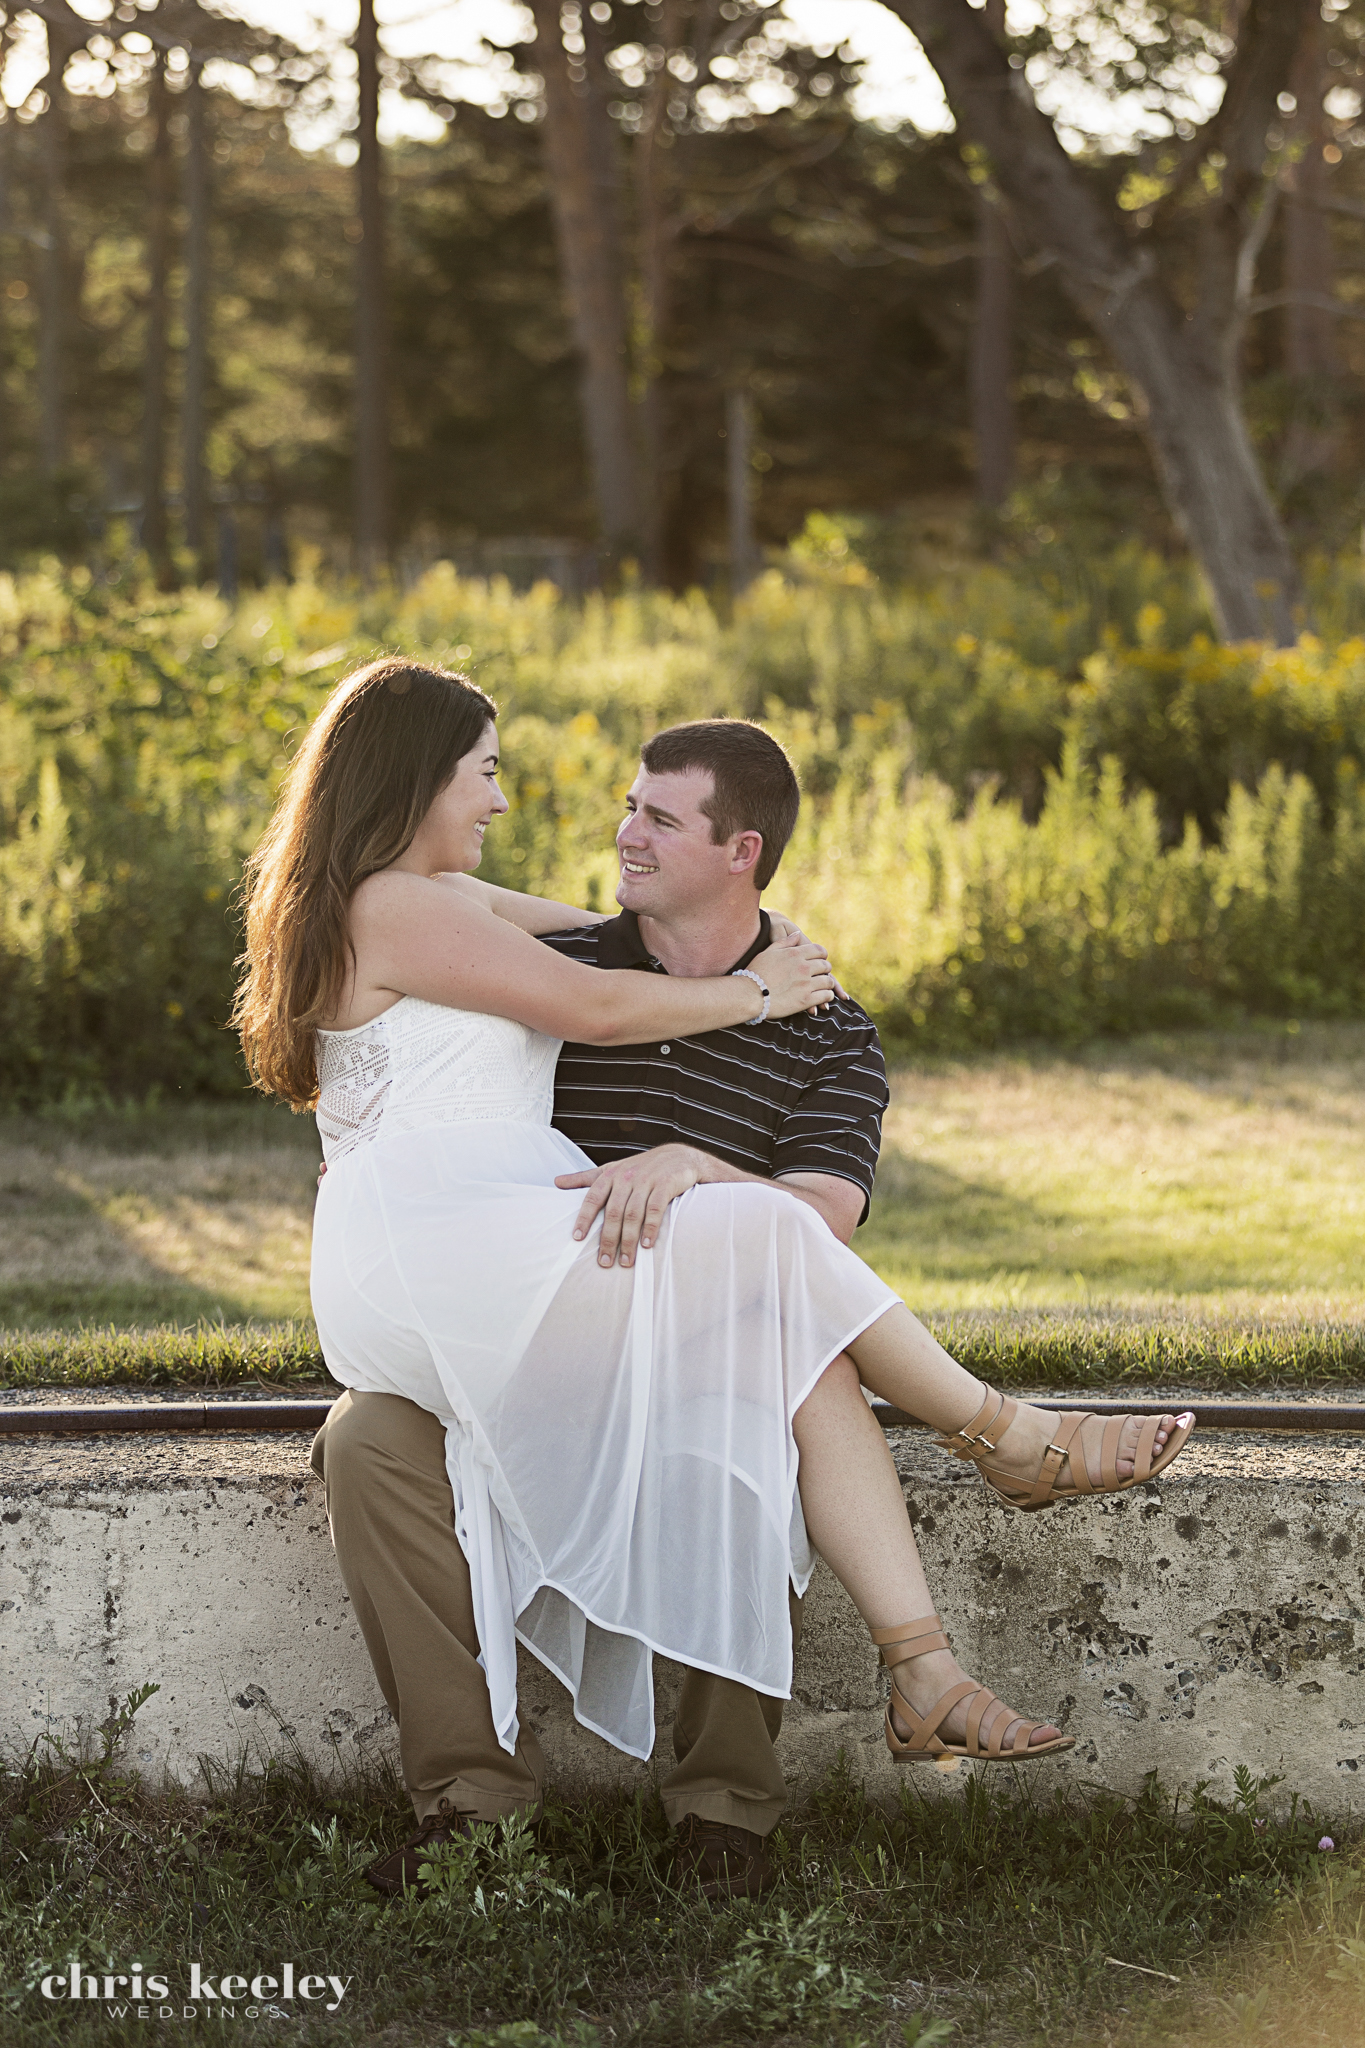 17-engagement-wedding-pictures-rye-new-hampshire-chris-keeley-weddings.jpg